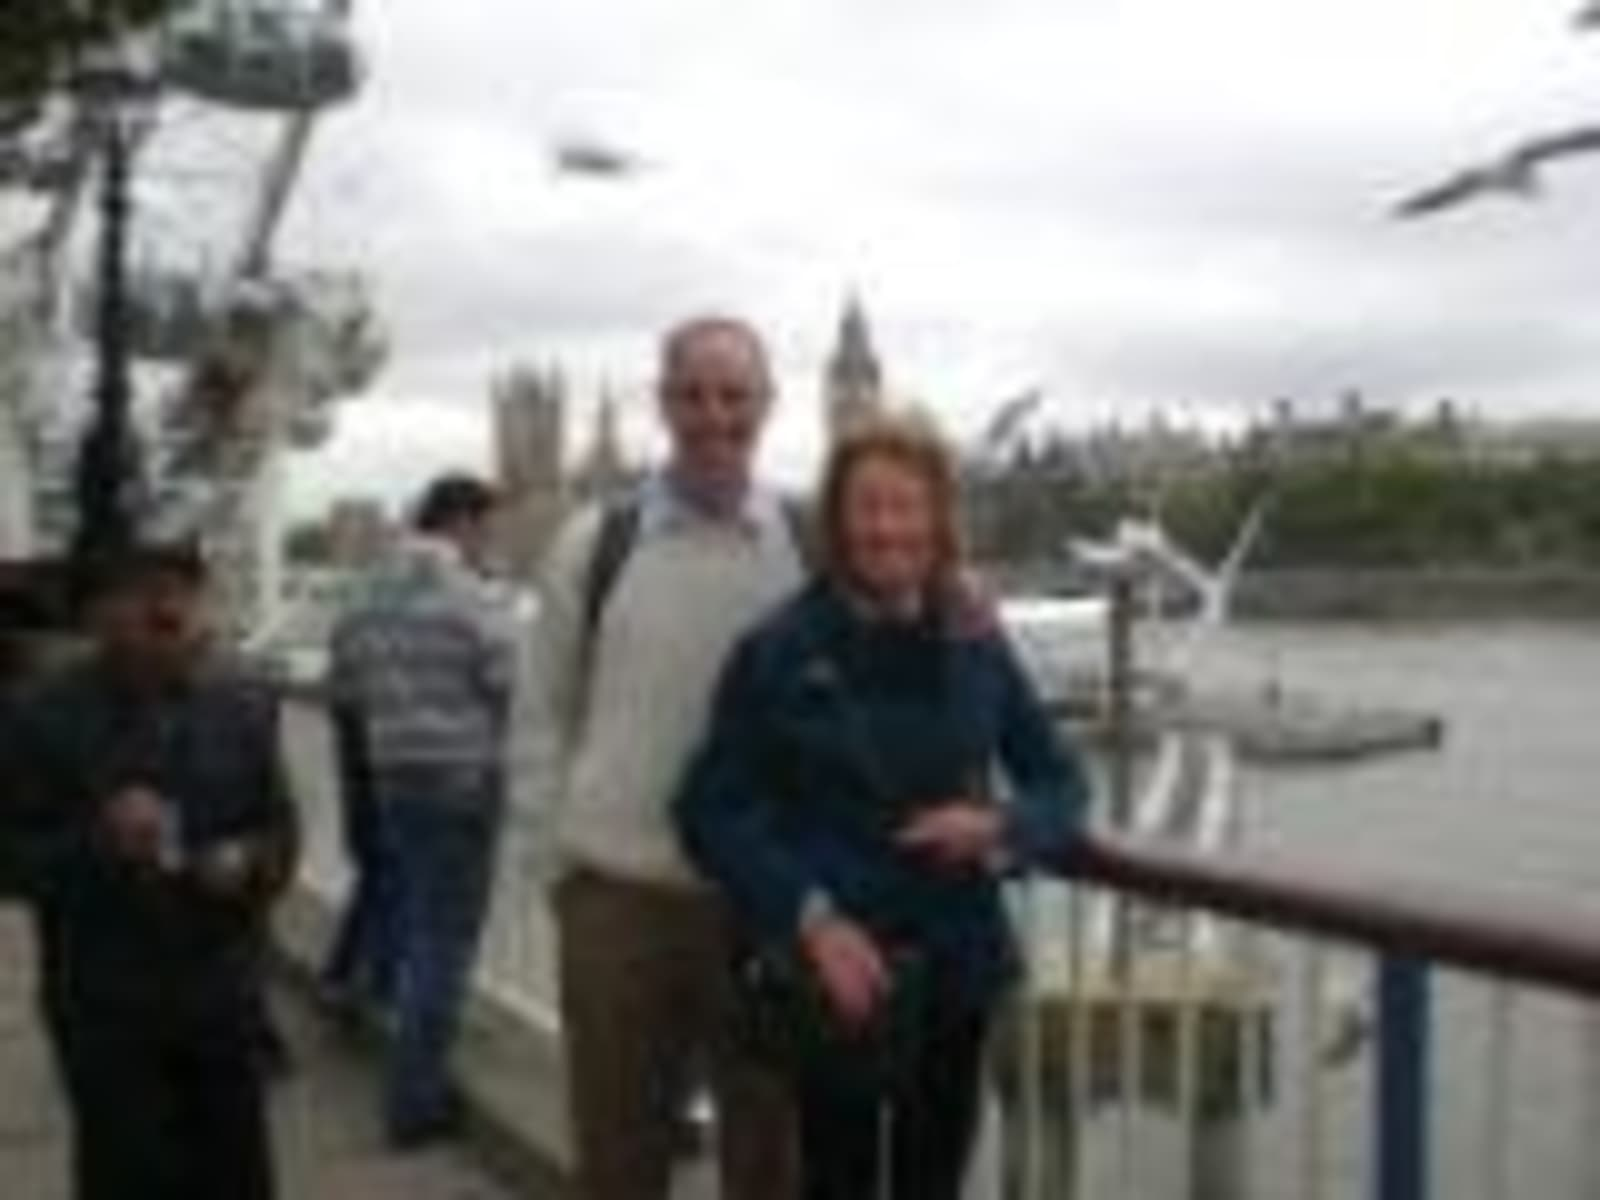 Maureen & Derek from Macclesfield, United Kingdom